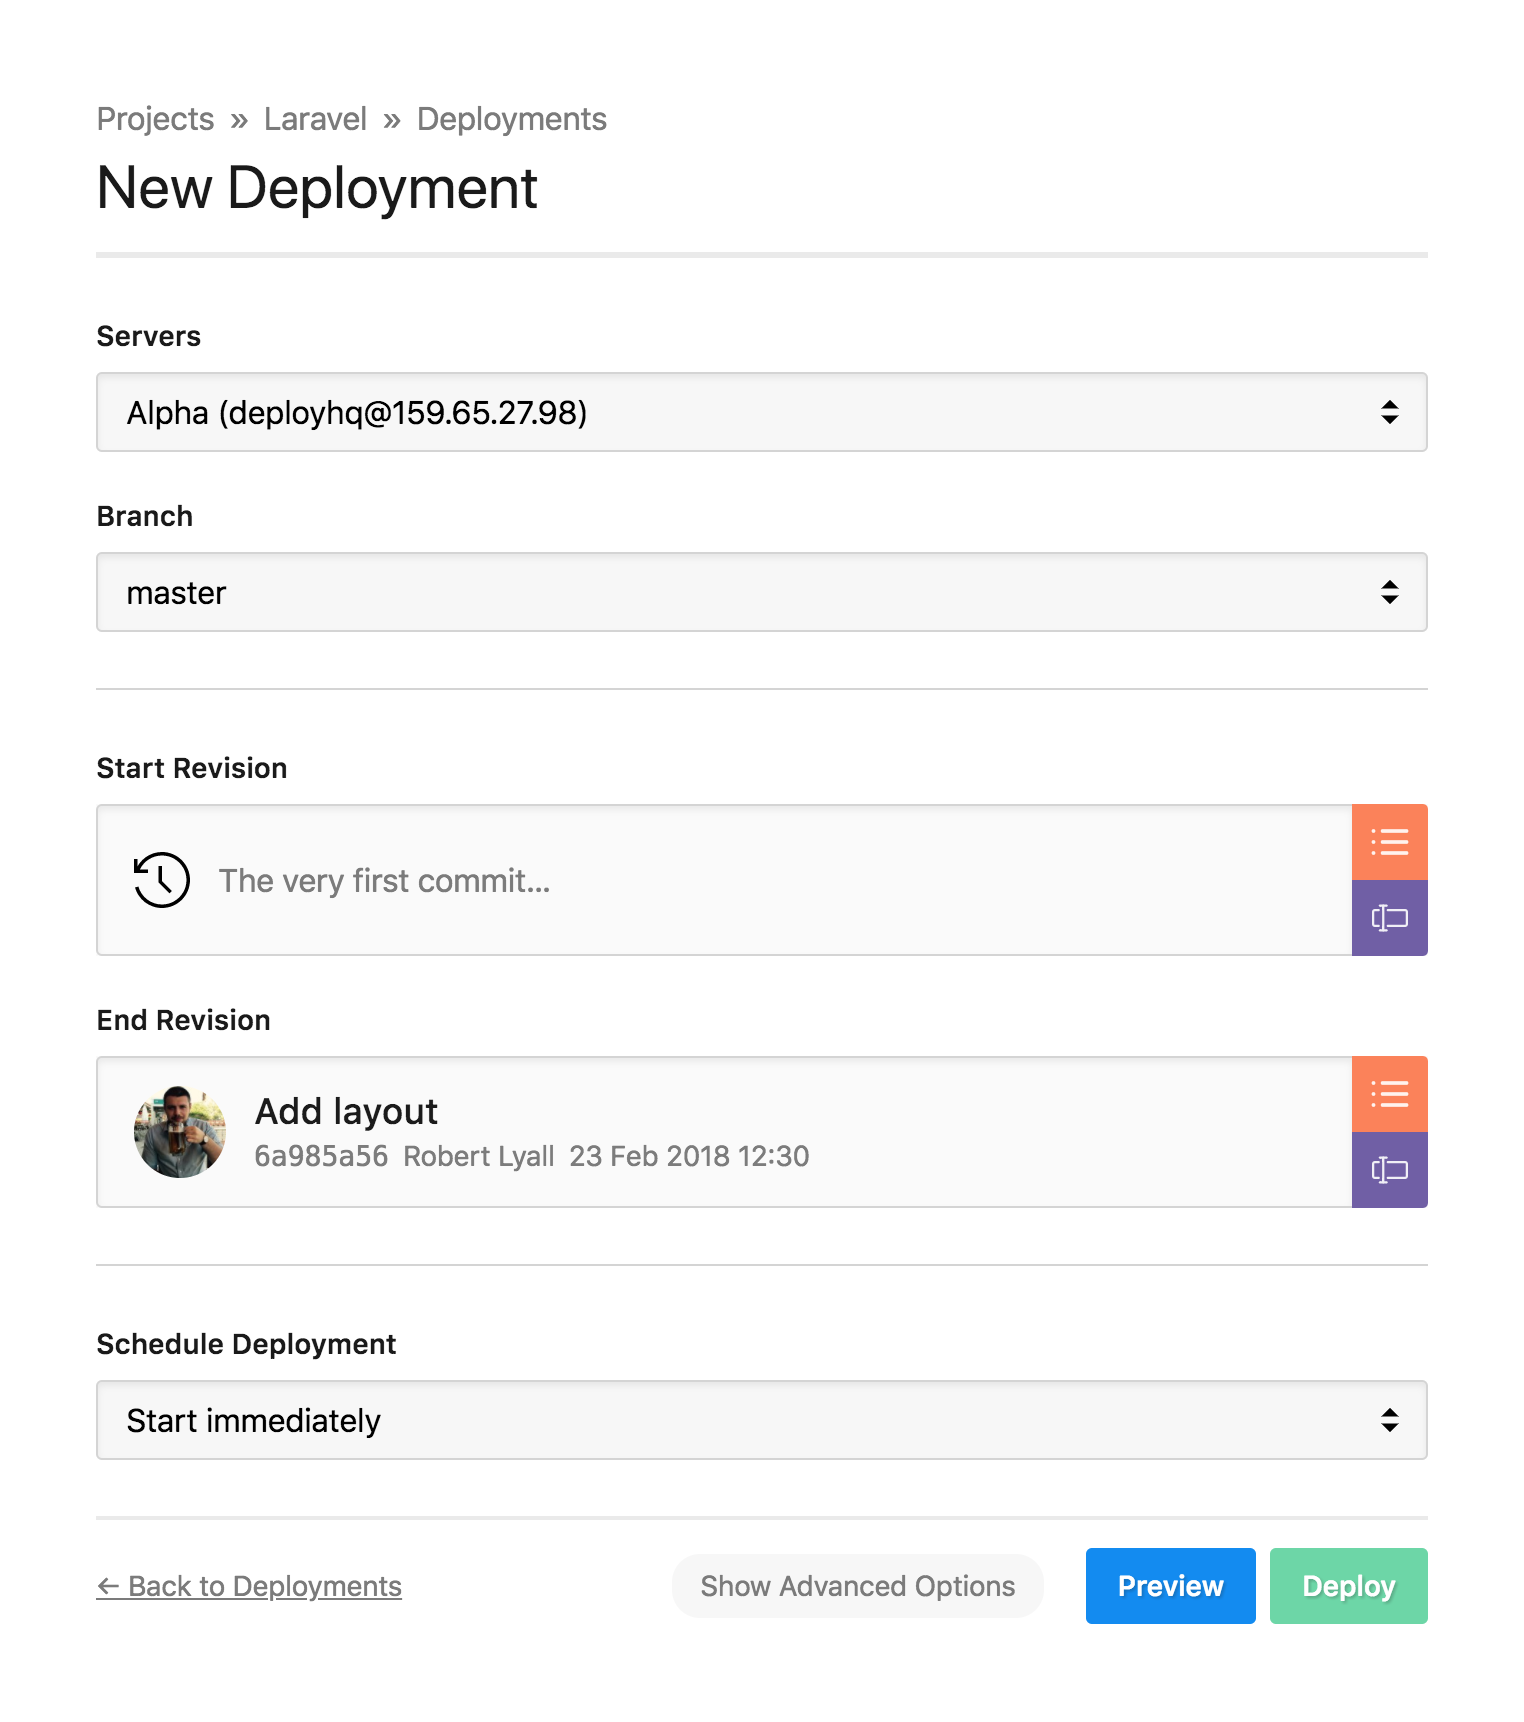 The deployment page